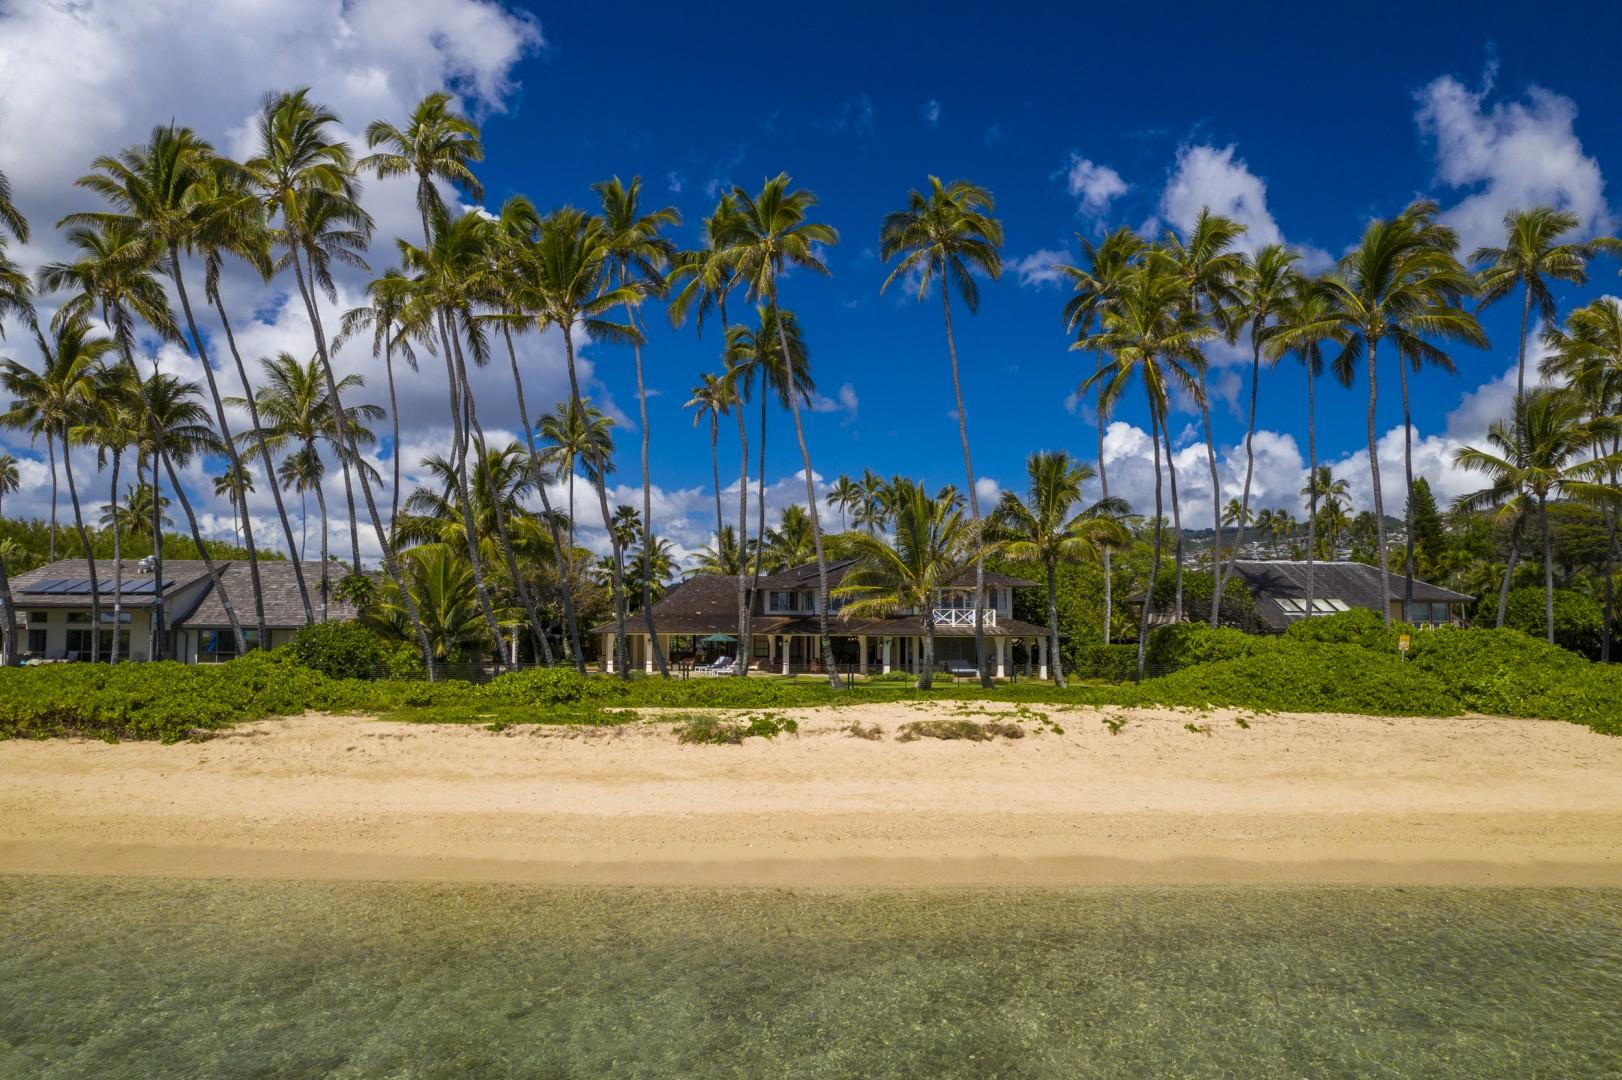 Enjoy walks on Kahala Beach at any time of day